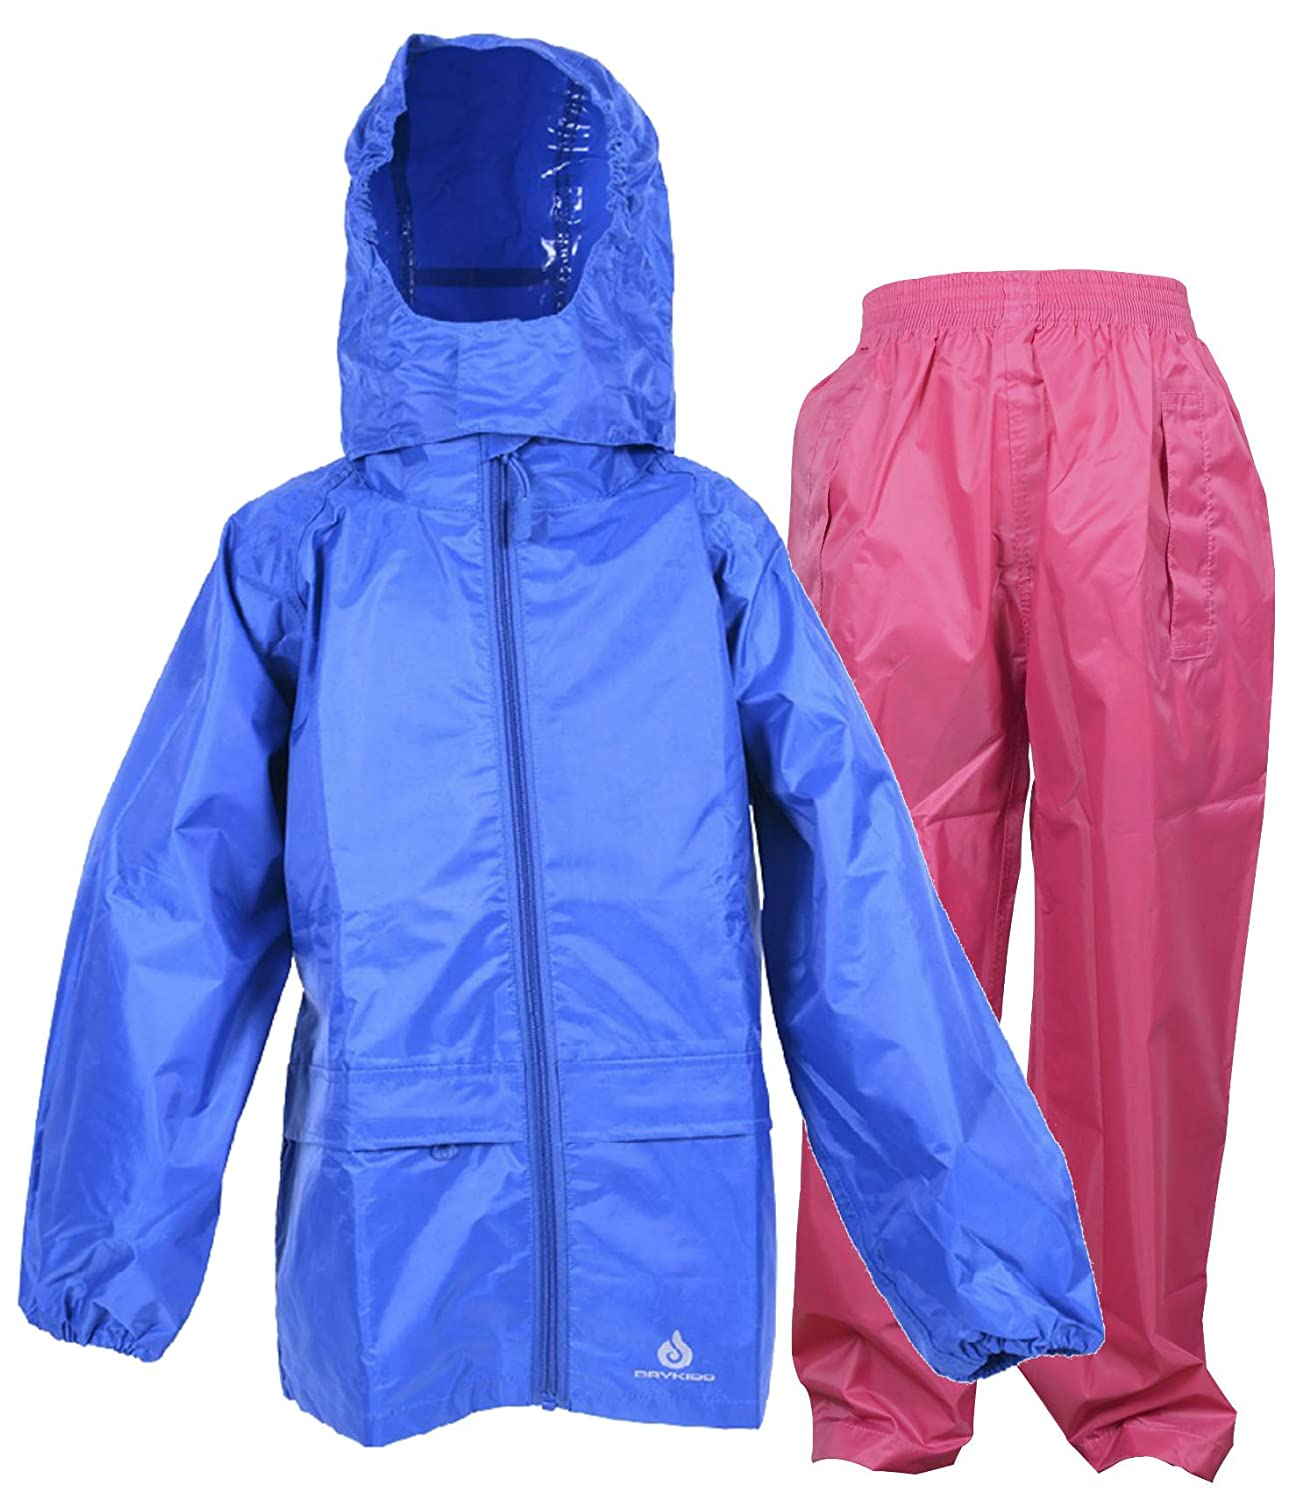 DRY KIDS Waterproof Suit - Comprising of Packaway Jacket and Over Trousers Mix & Match Colours